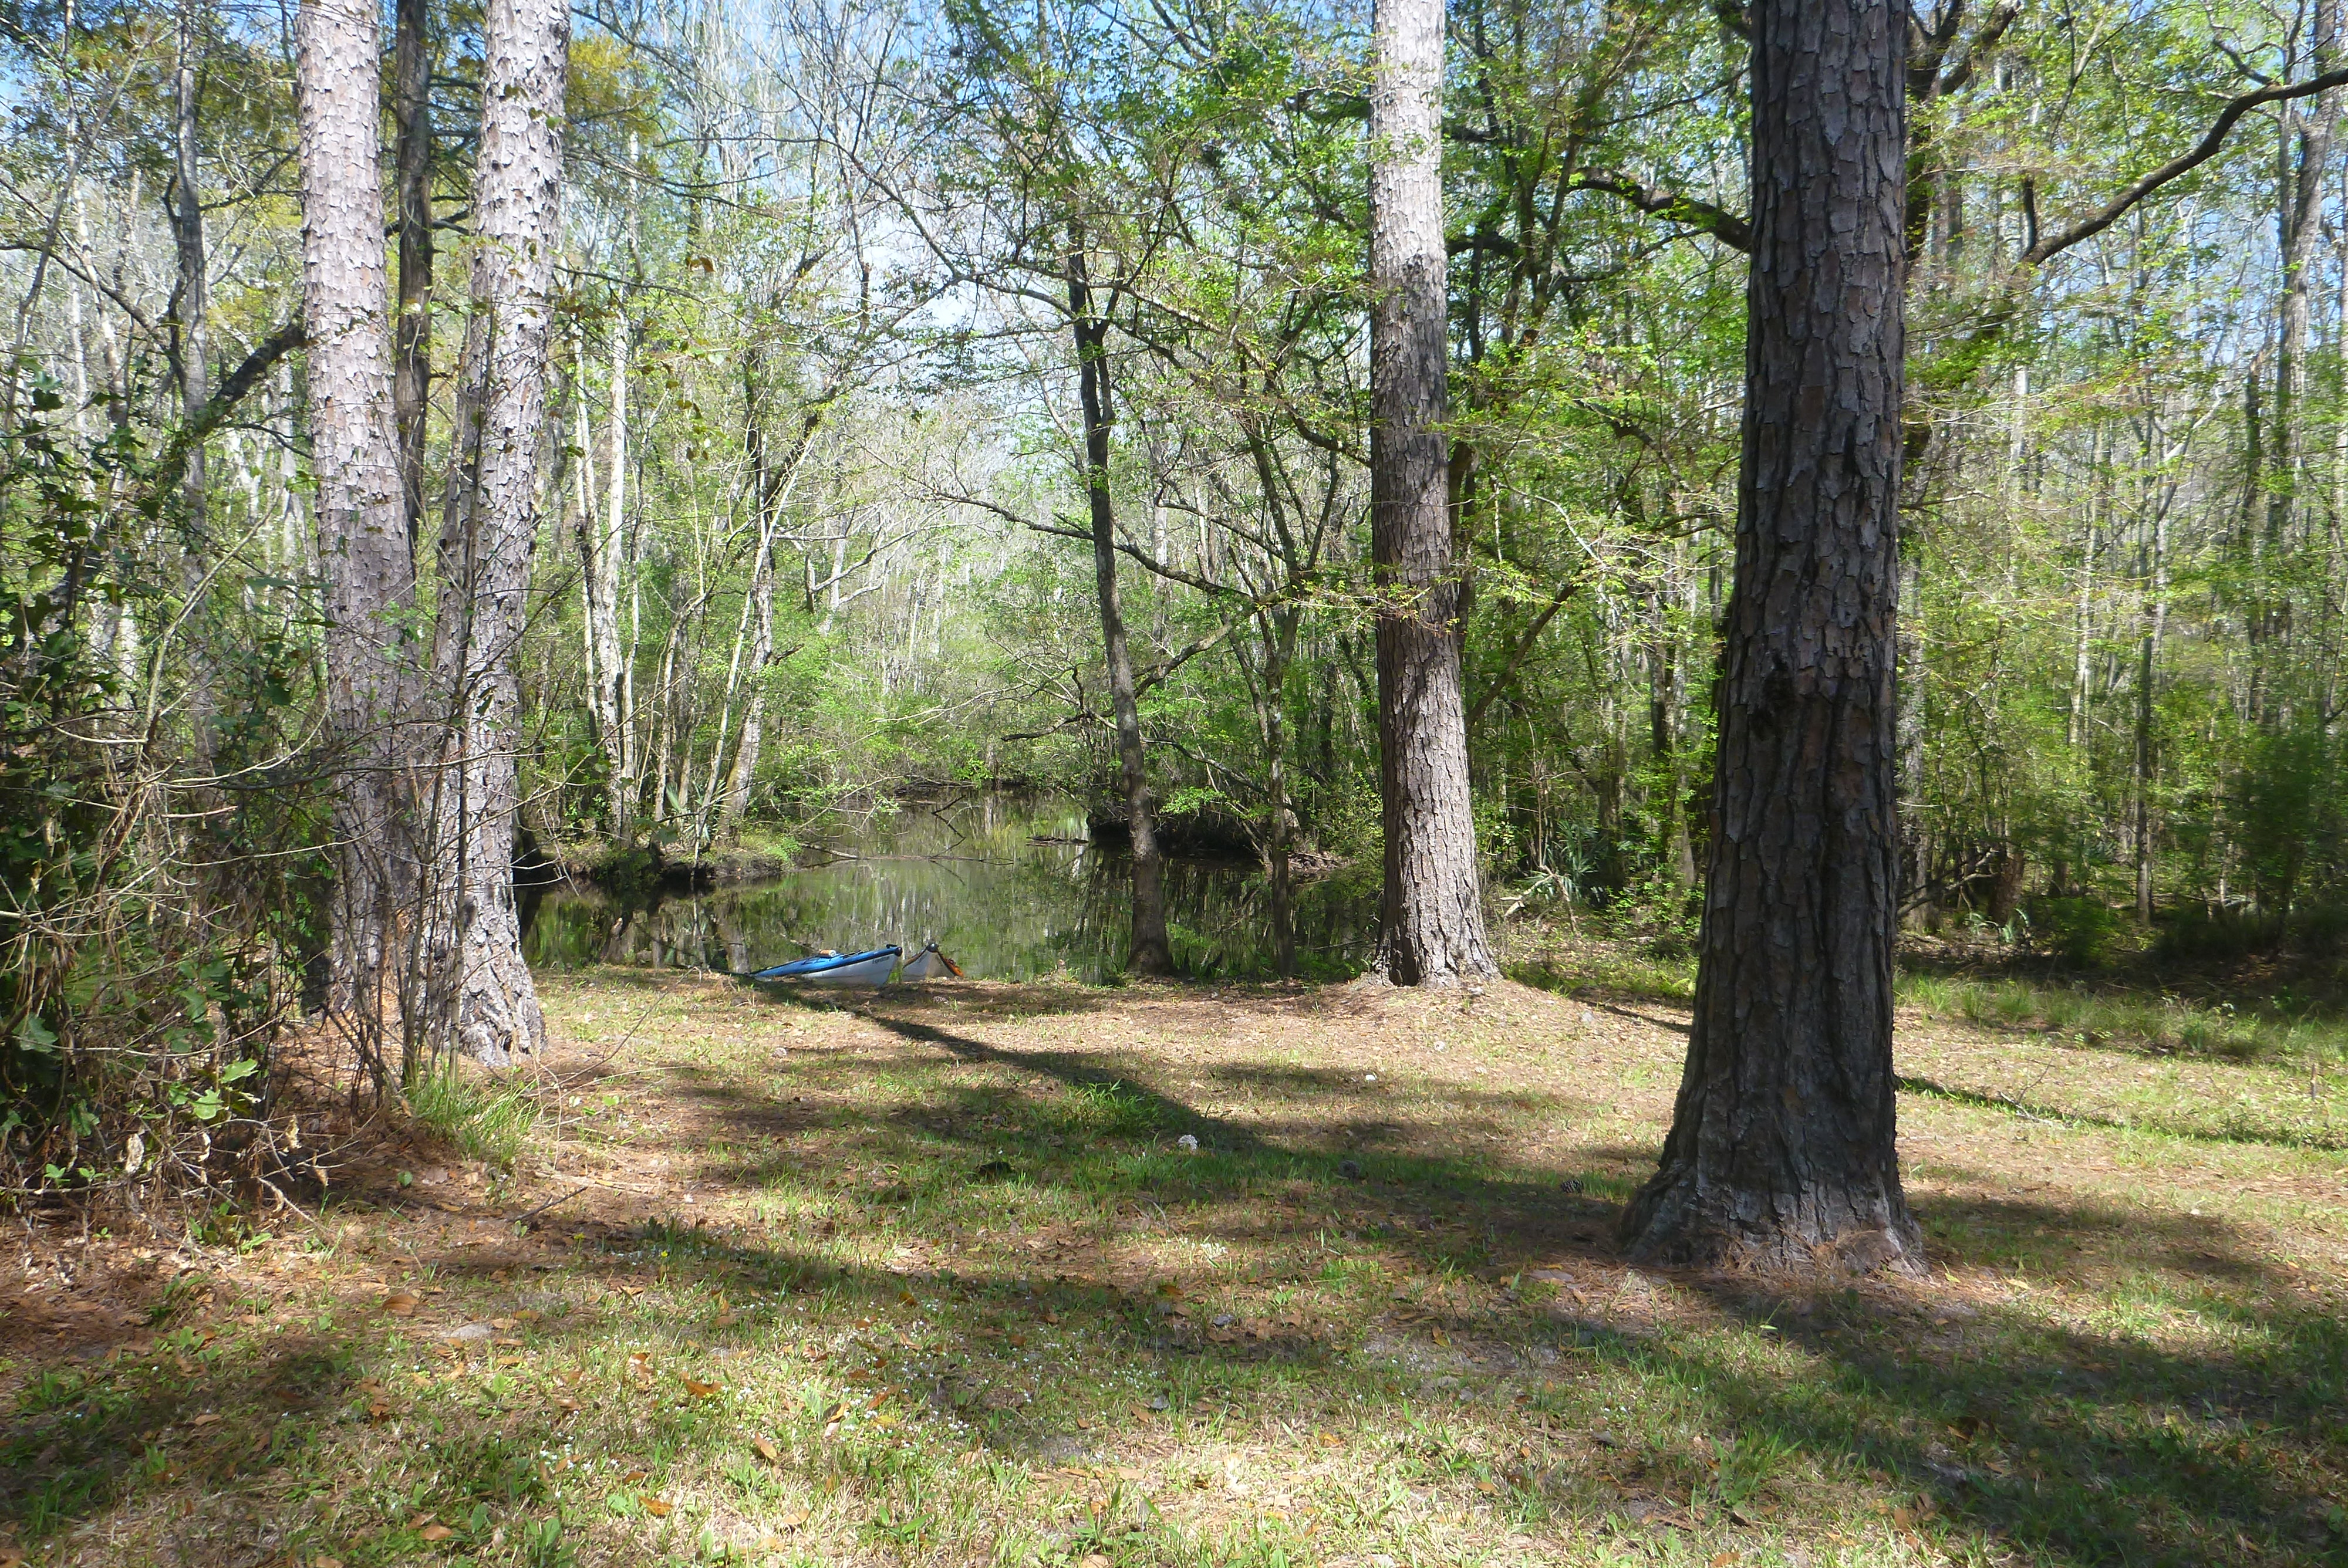 Camping | Tate's Hell and Blackwater River State Forests